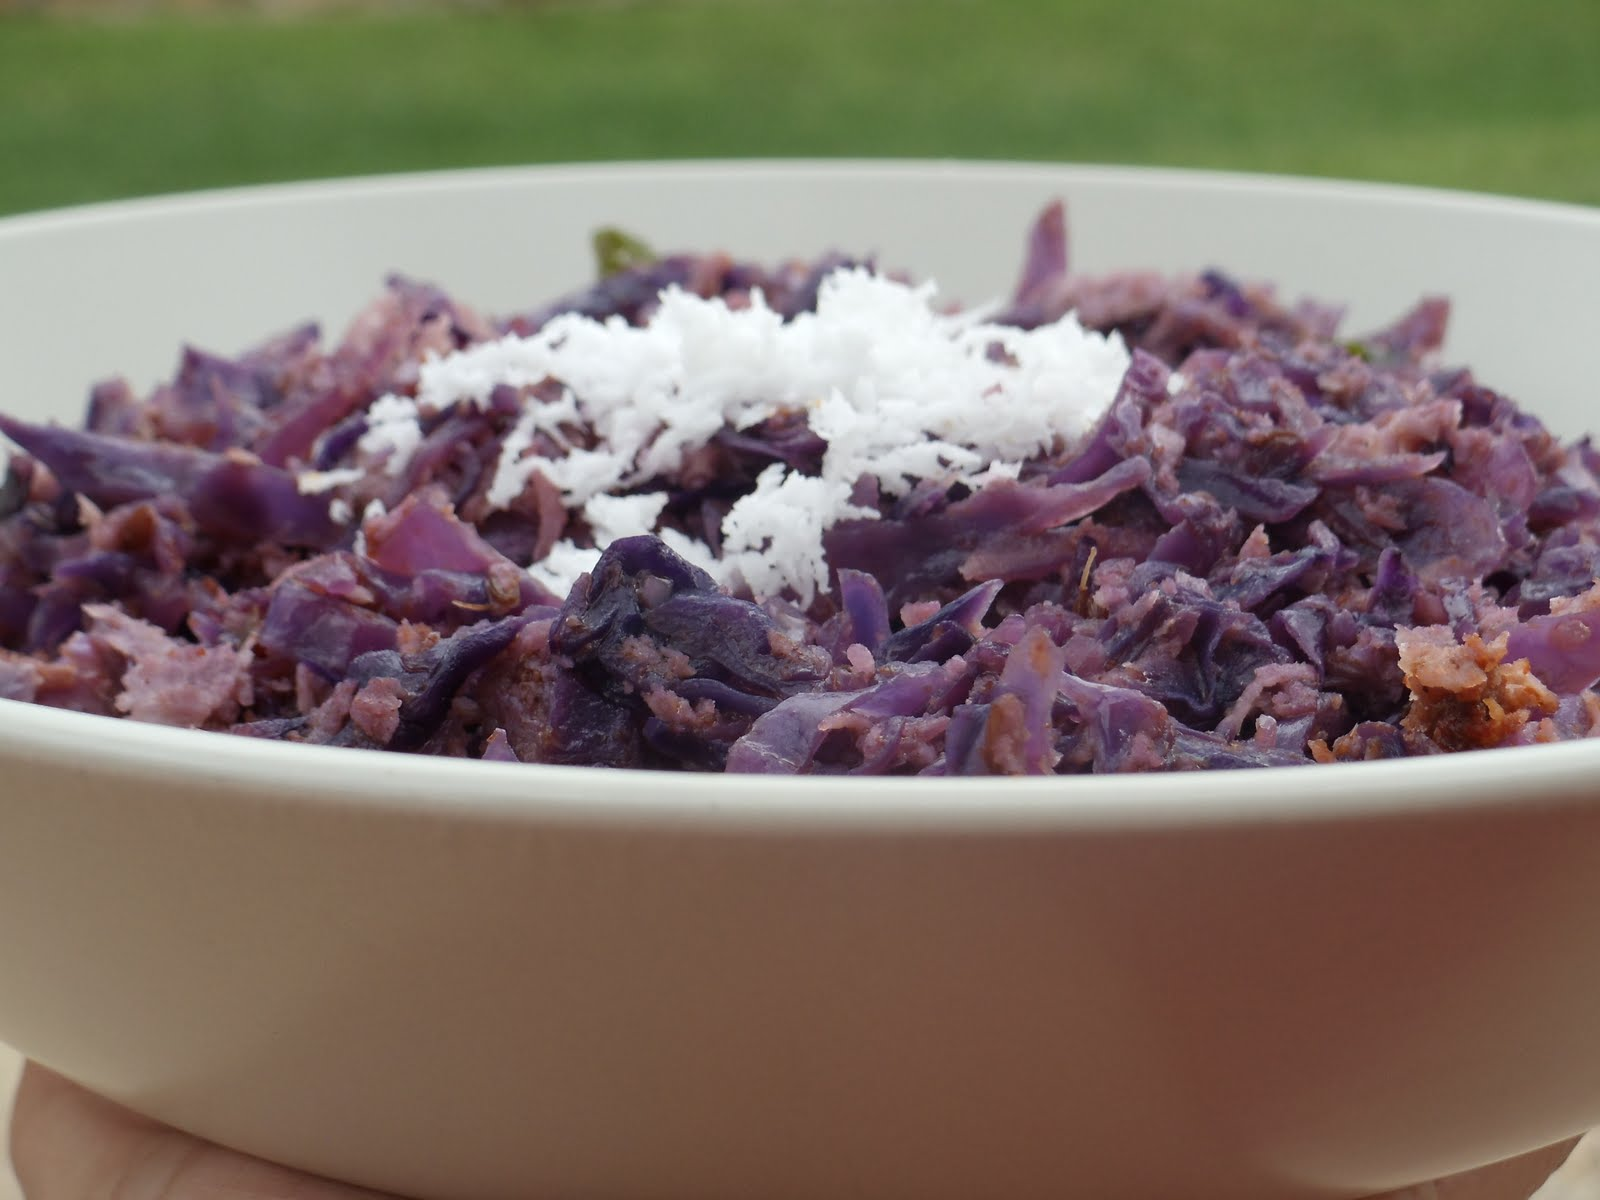 Stir fried purple cabbage